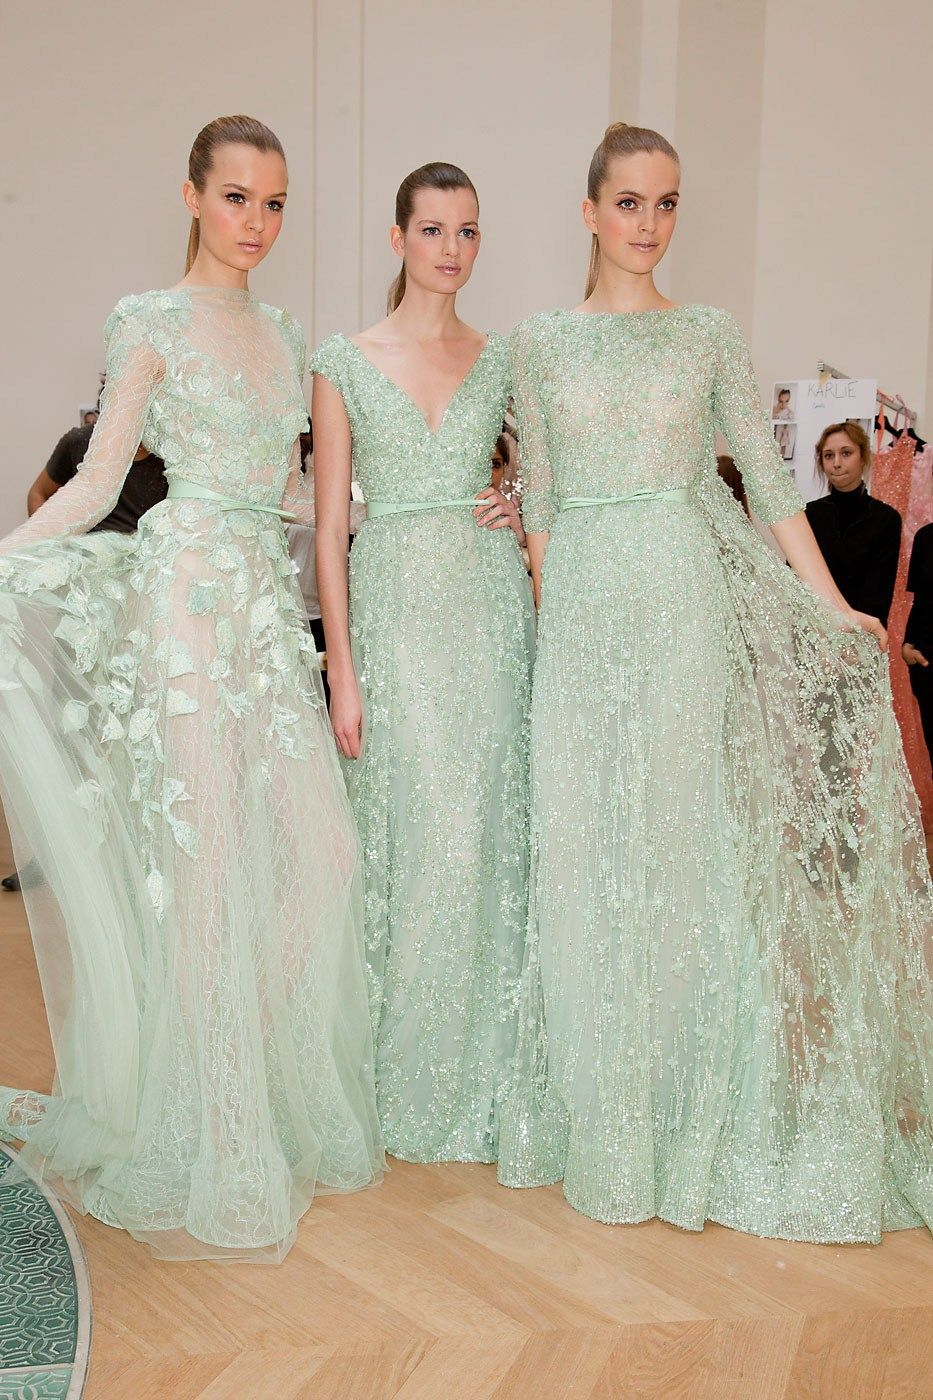 Elie Saab - Beach weddings dresses Ideas #pastel | Ever so lovely ...